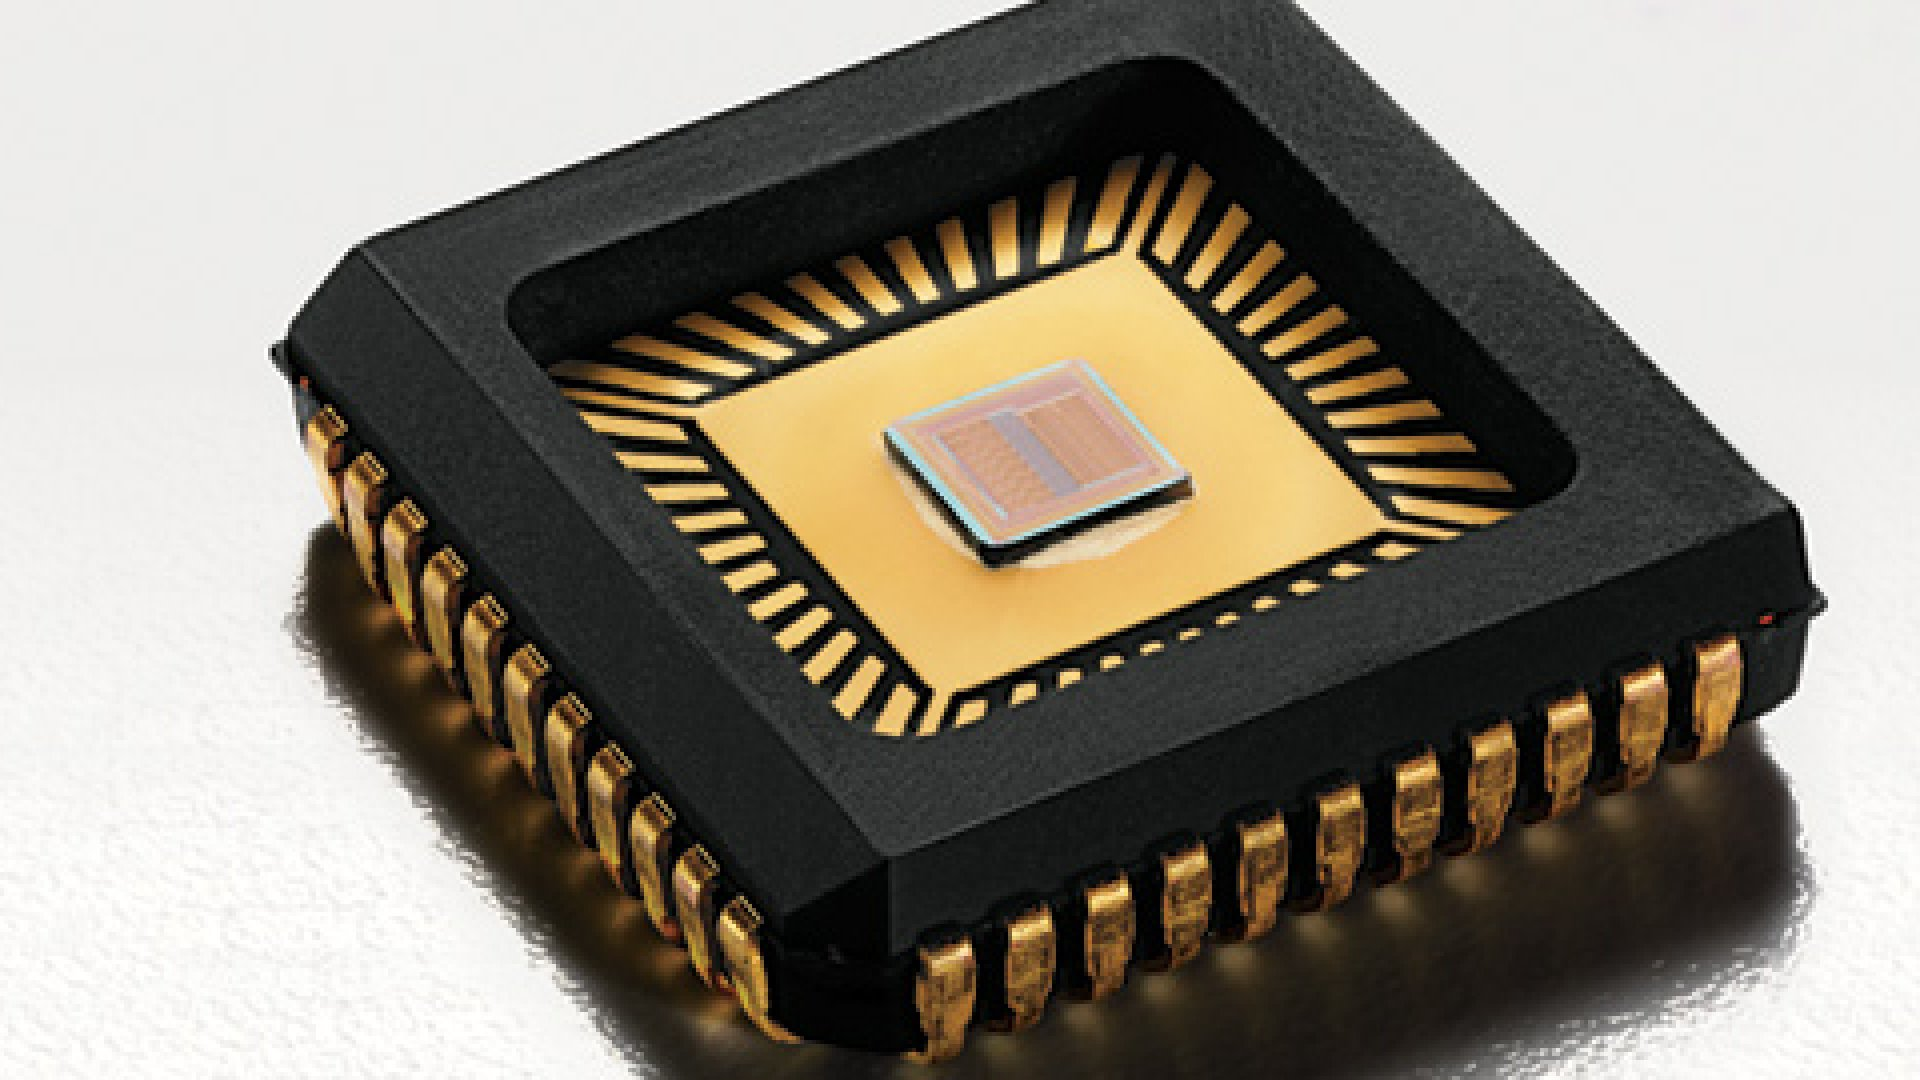 Innovation: Probability Processing Chip